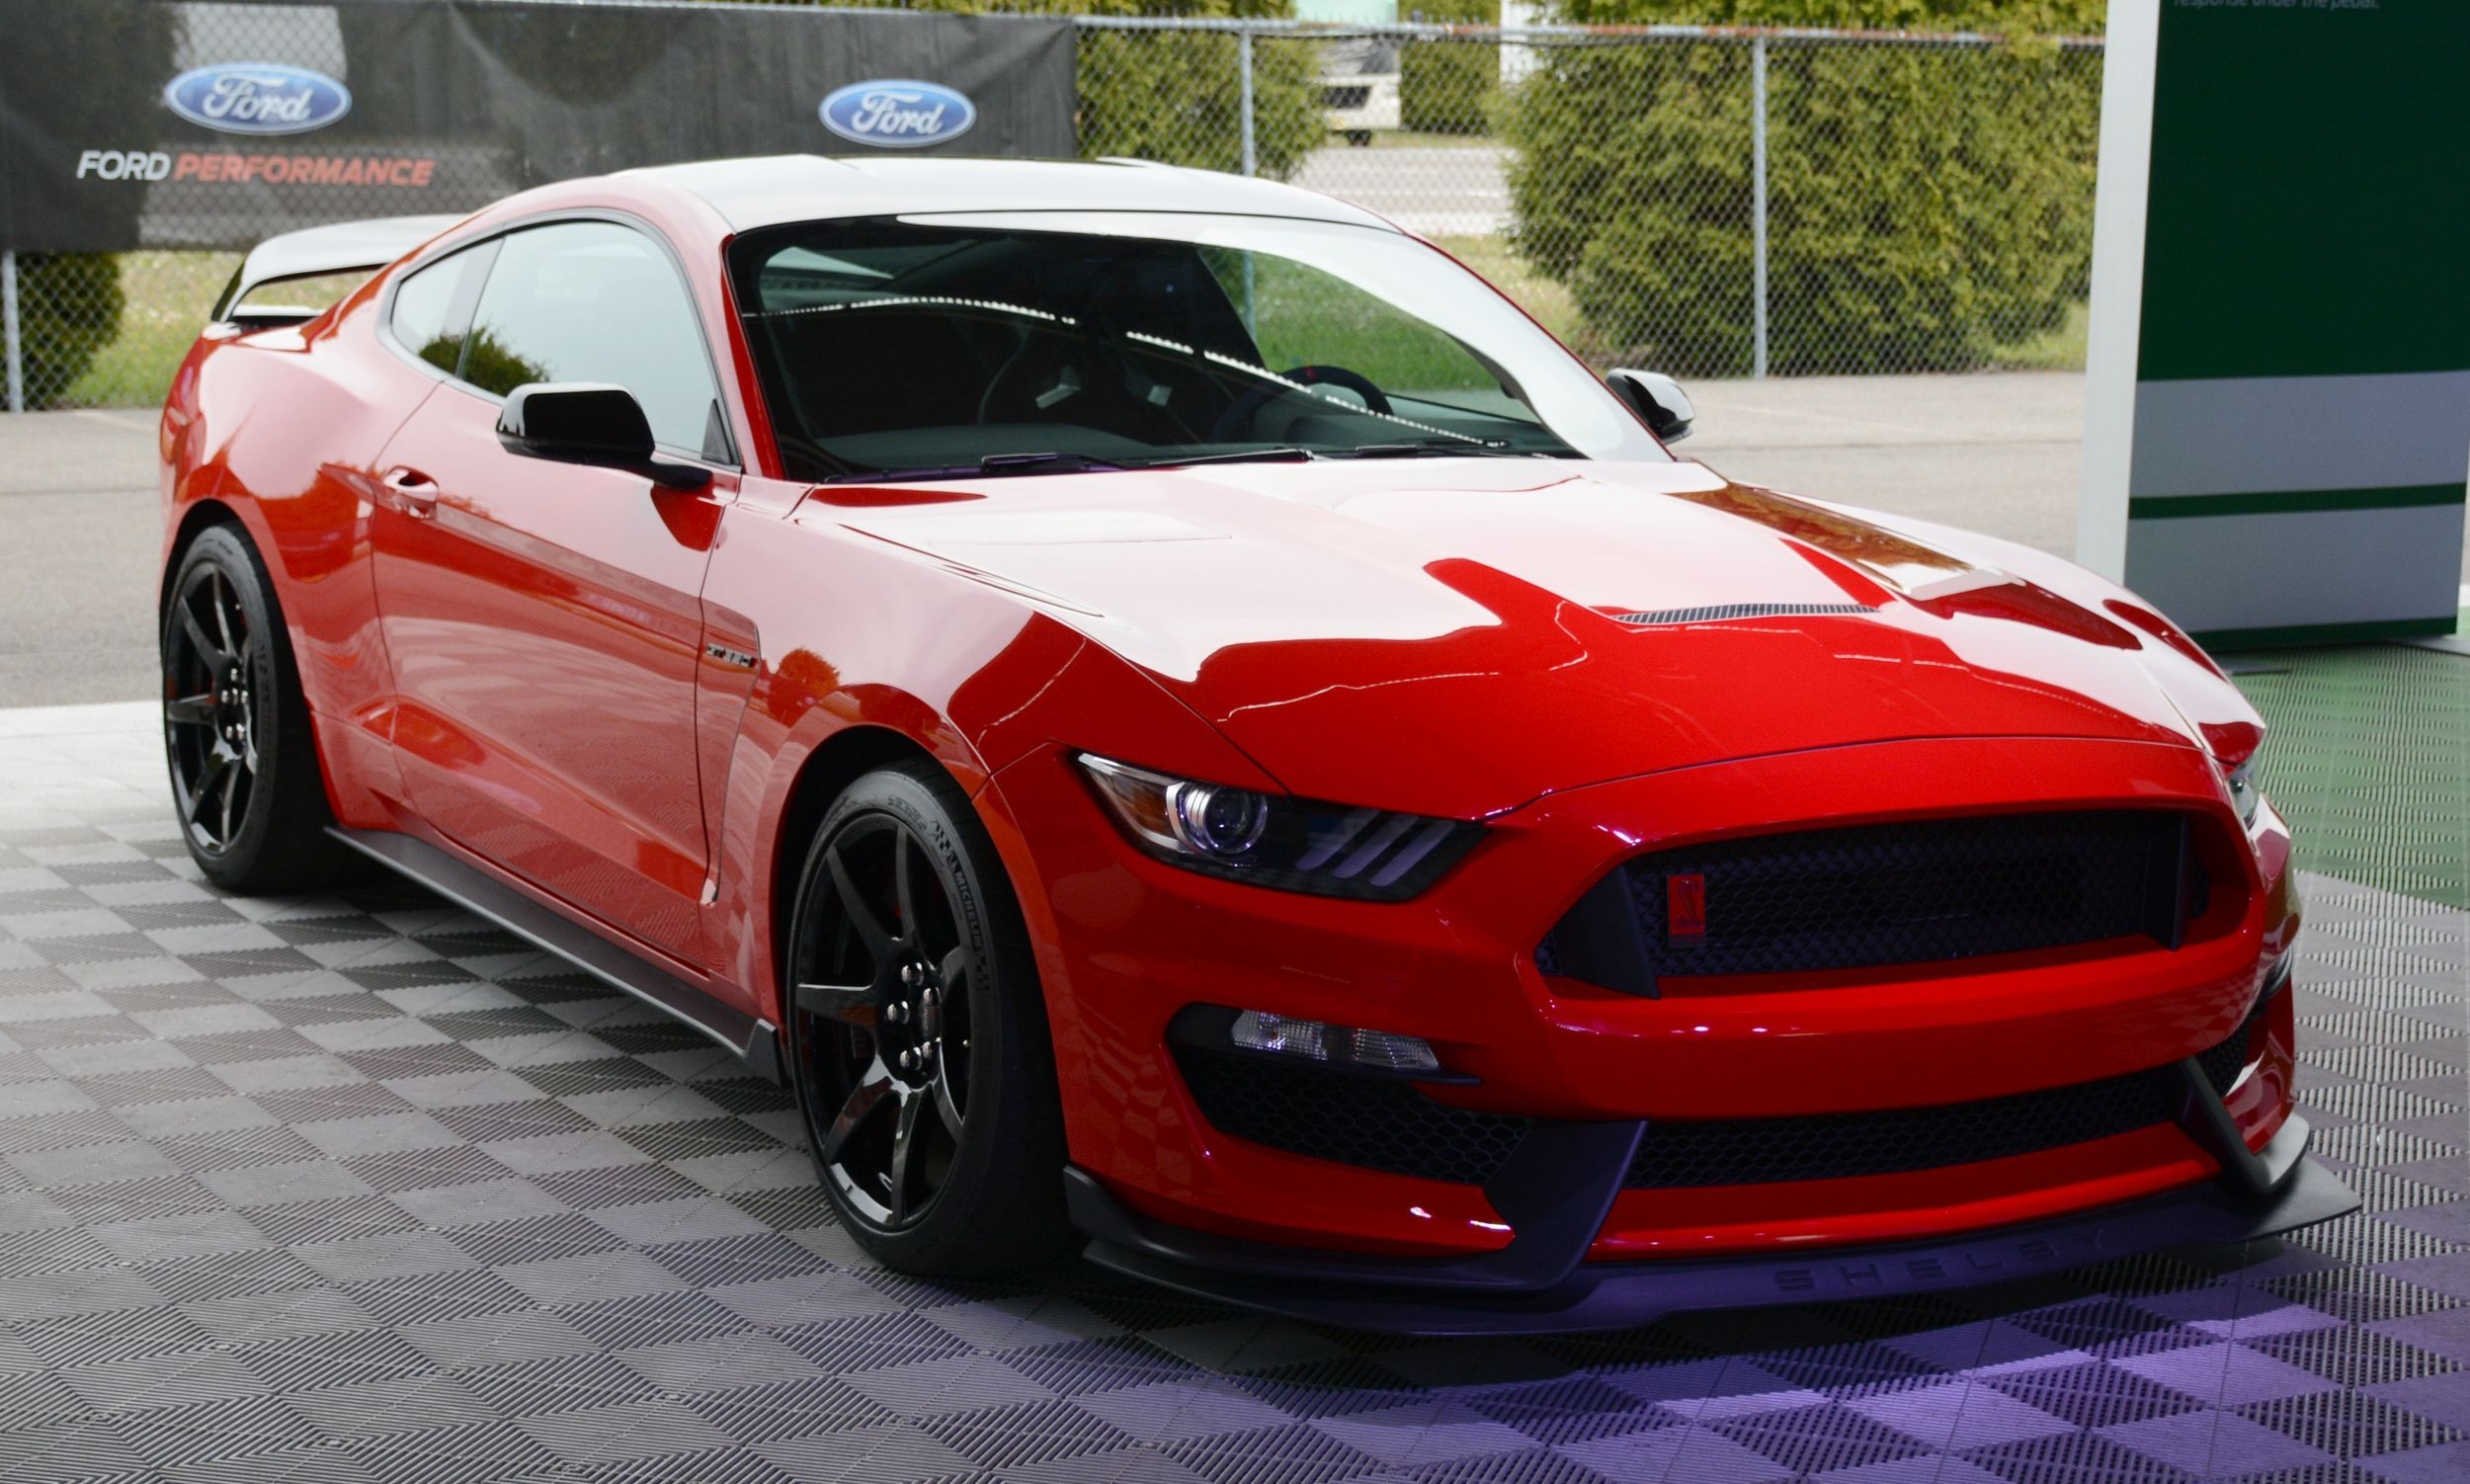 Ford S Latest Shelby Gt350 Is A Mustang Worthy Of The Name